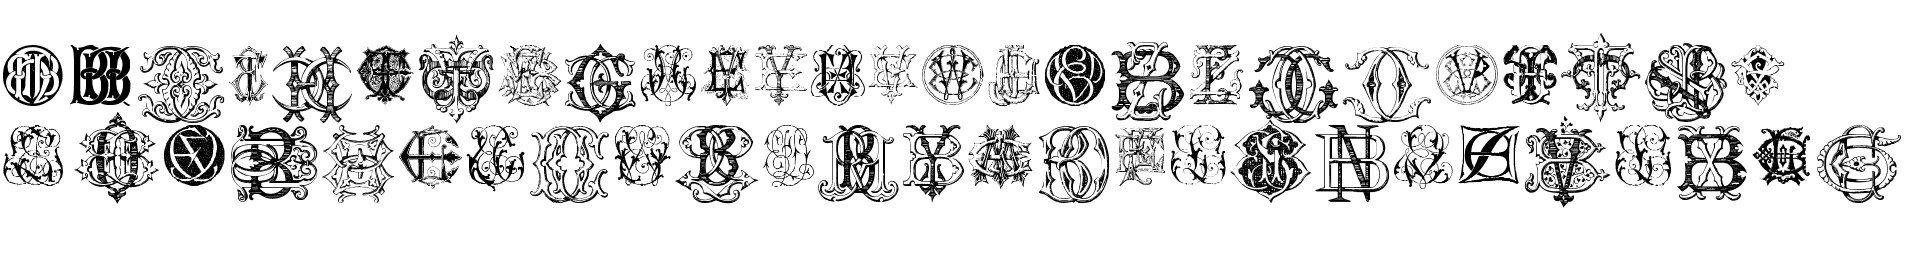 Intellecta Monograms Random Samples Eleven